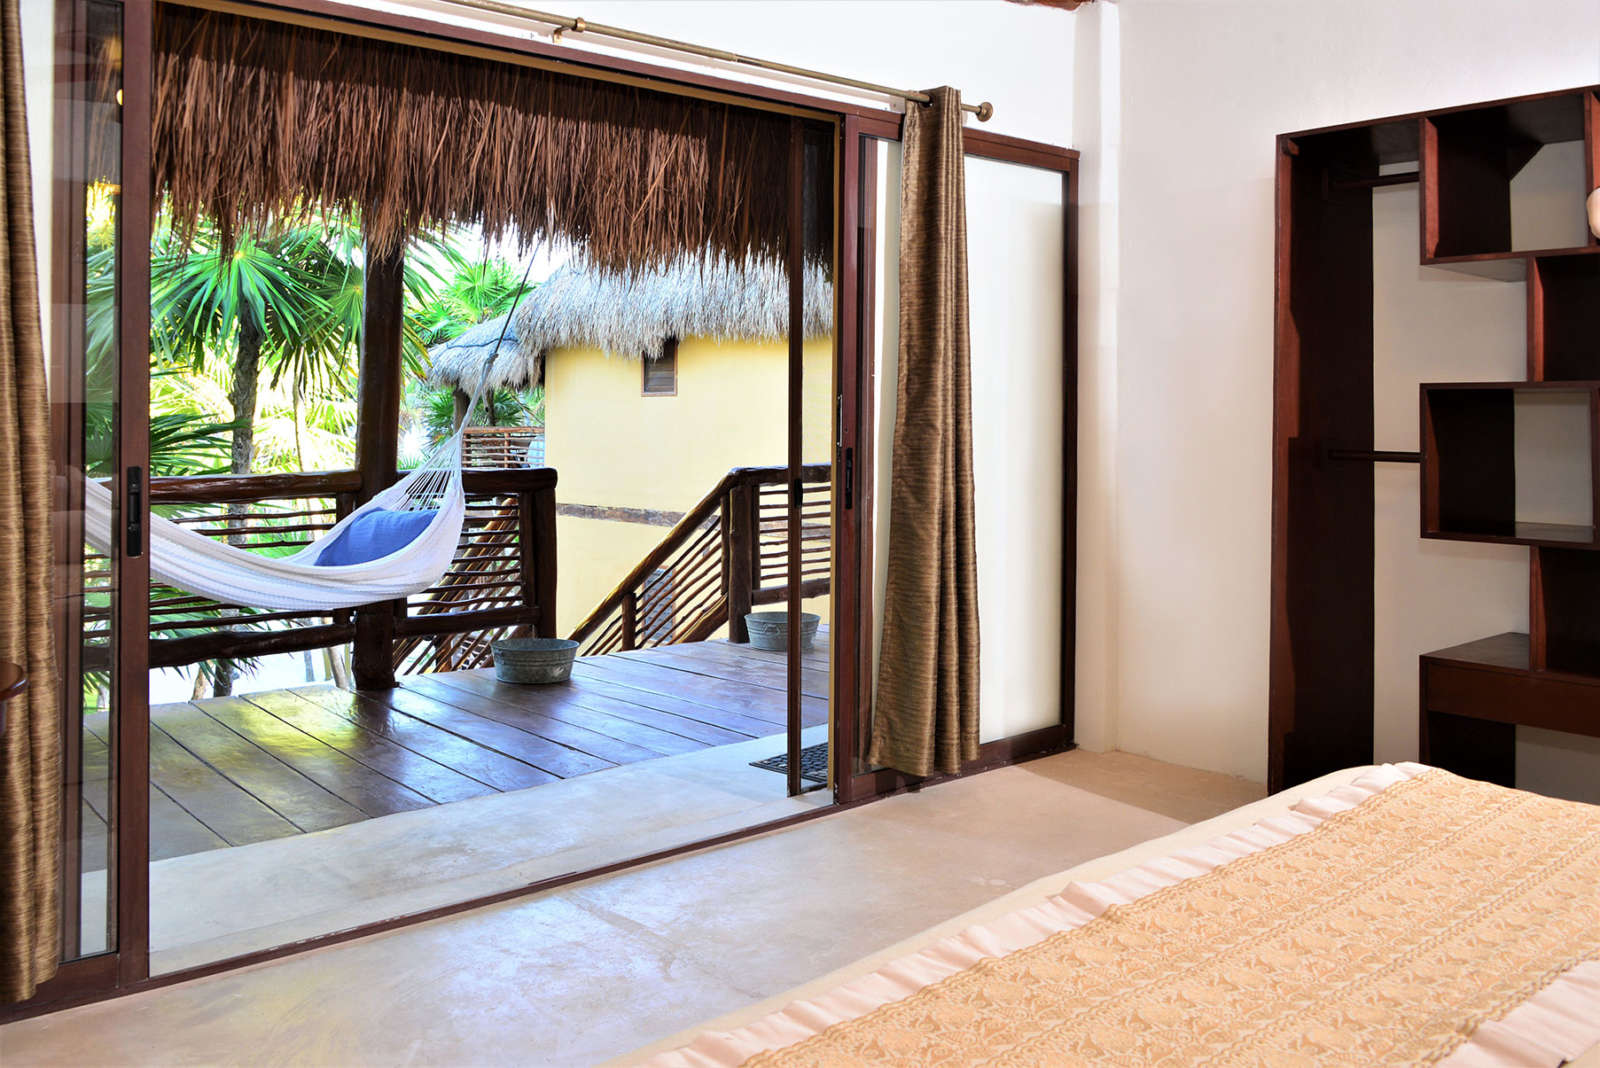 Bedroom and balcony at Hip Hotel Tulum